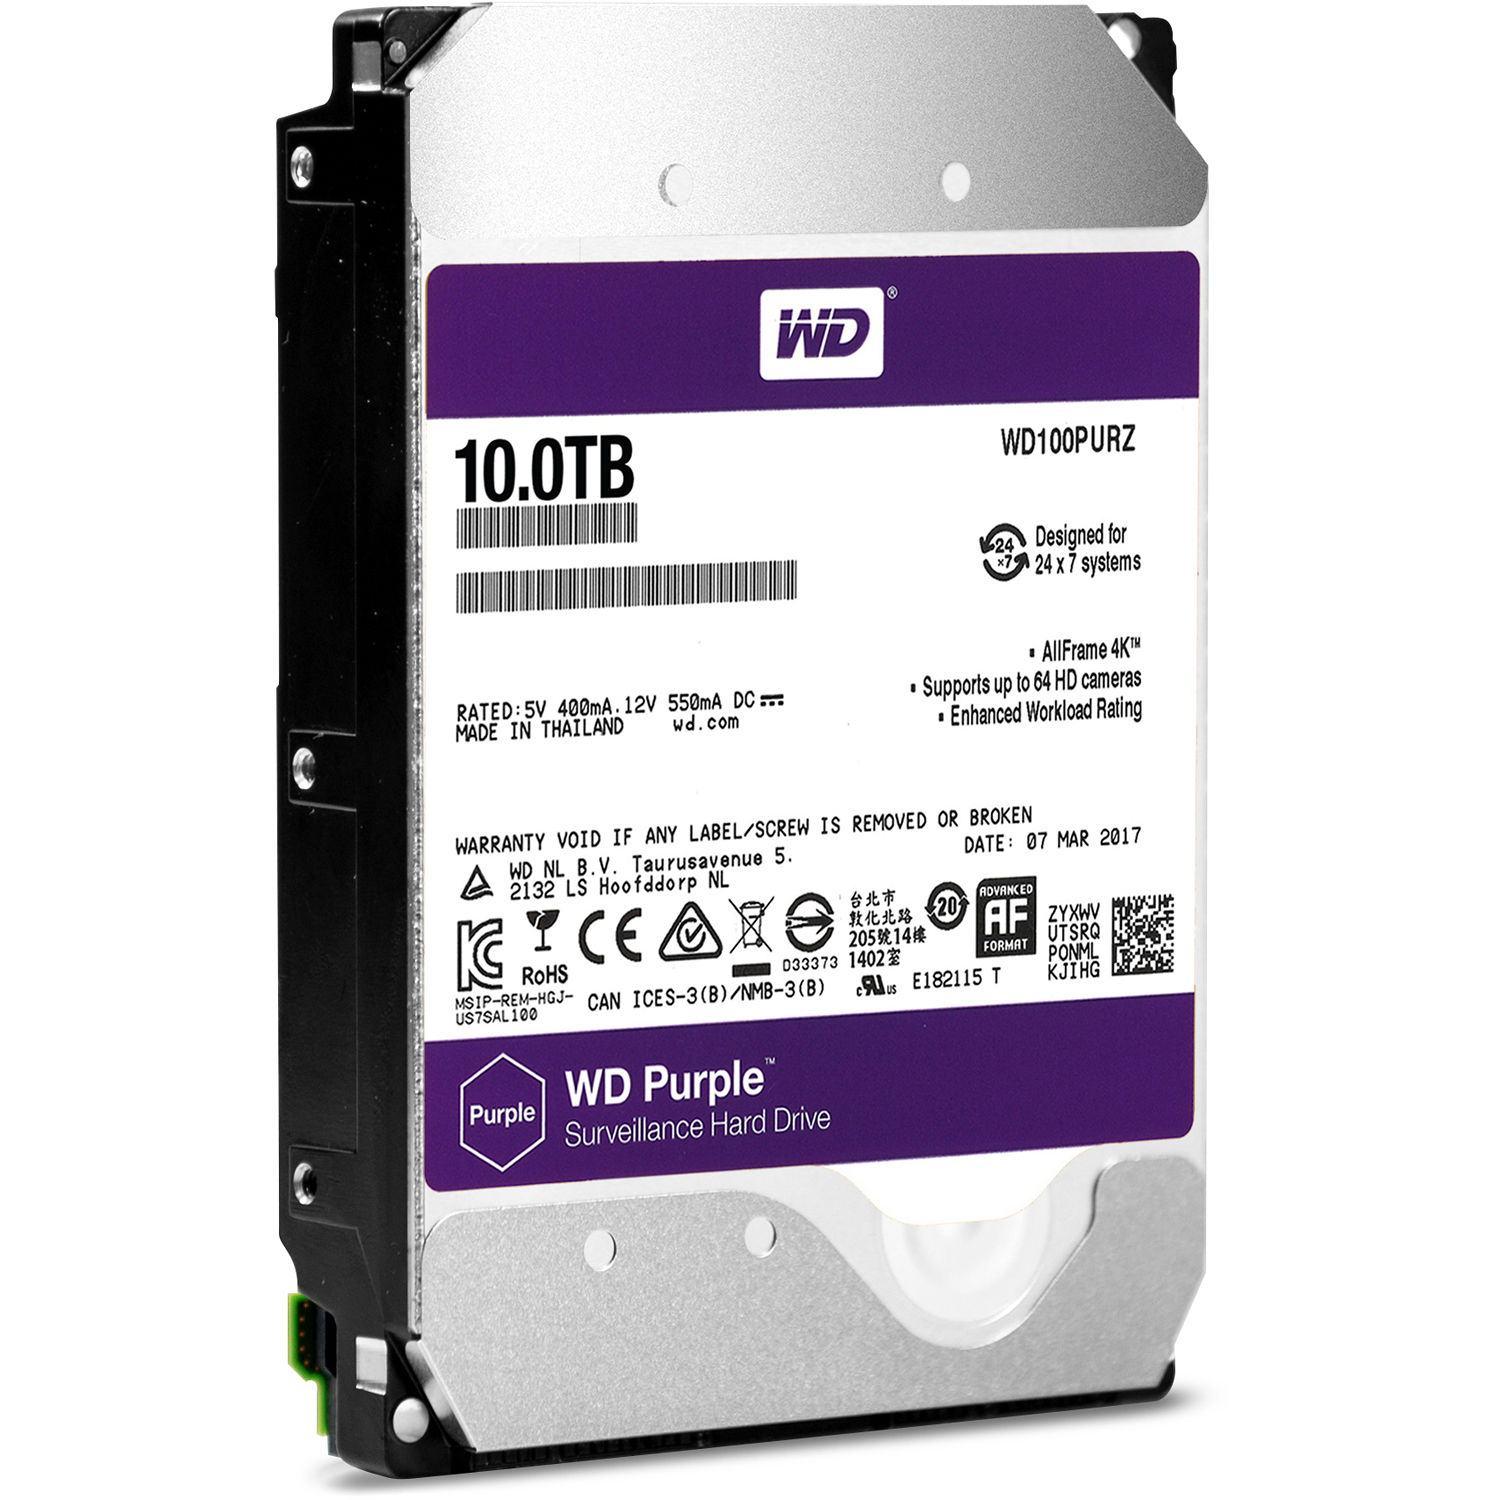 WD101PURZ WESTERN DIGITAL 10TB HARD DRIVE PURPLE USAG